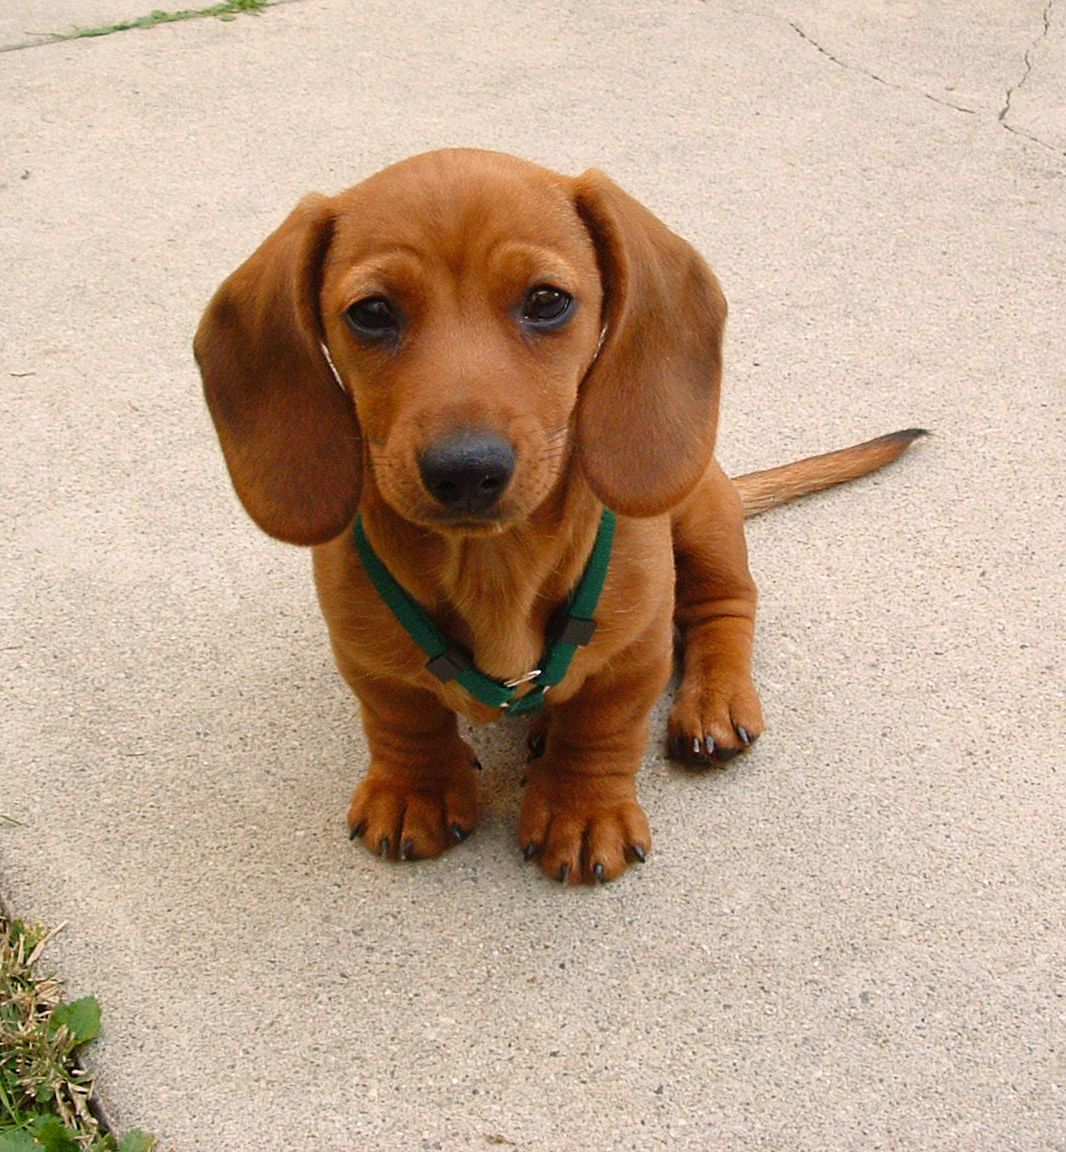 Dachshunds for Sale in Richmond, VA Dogs on Oodle